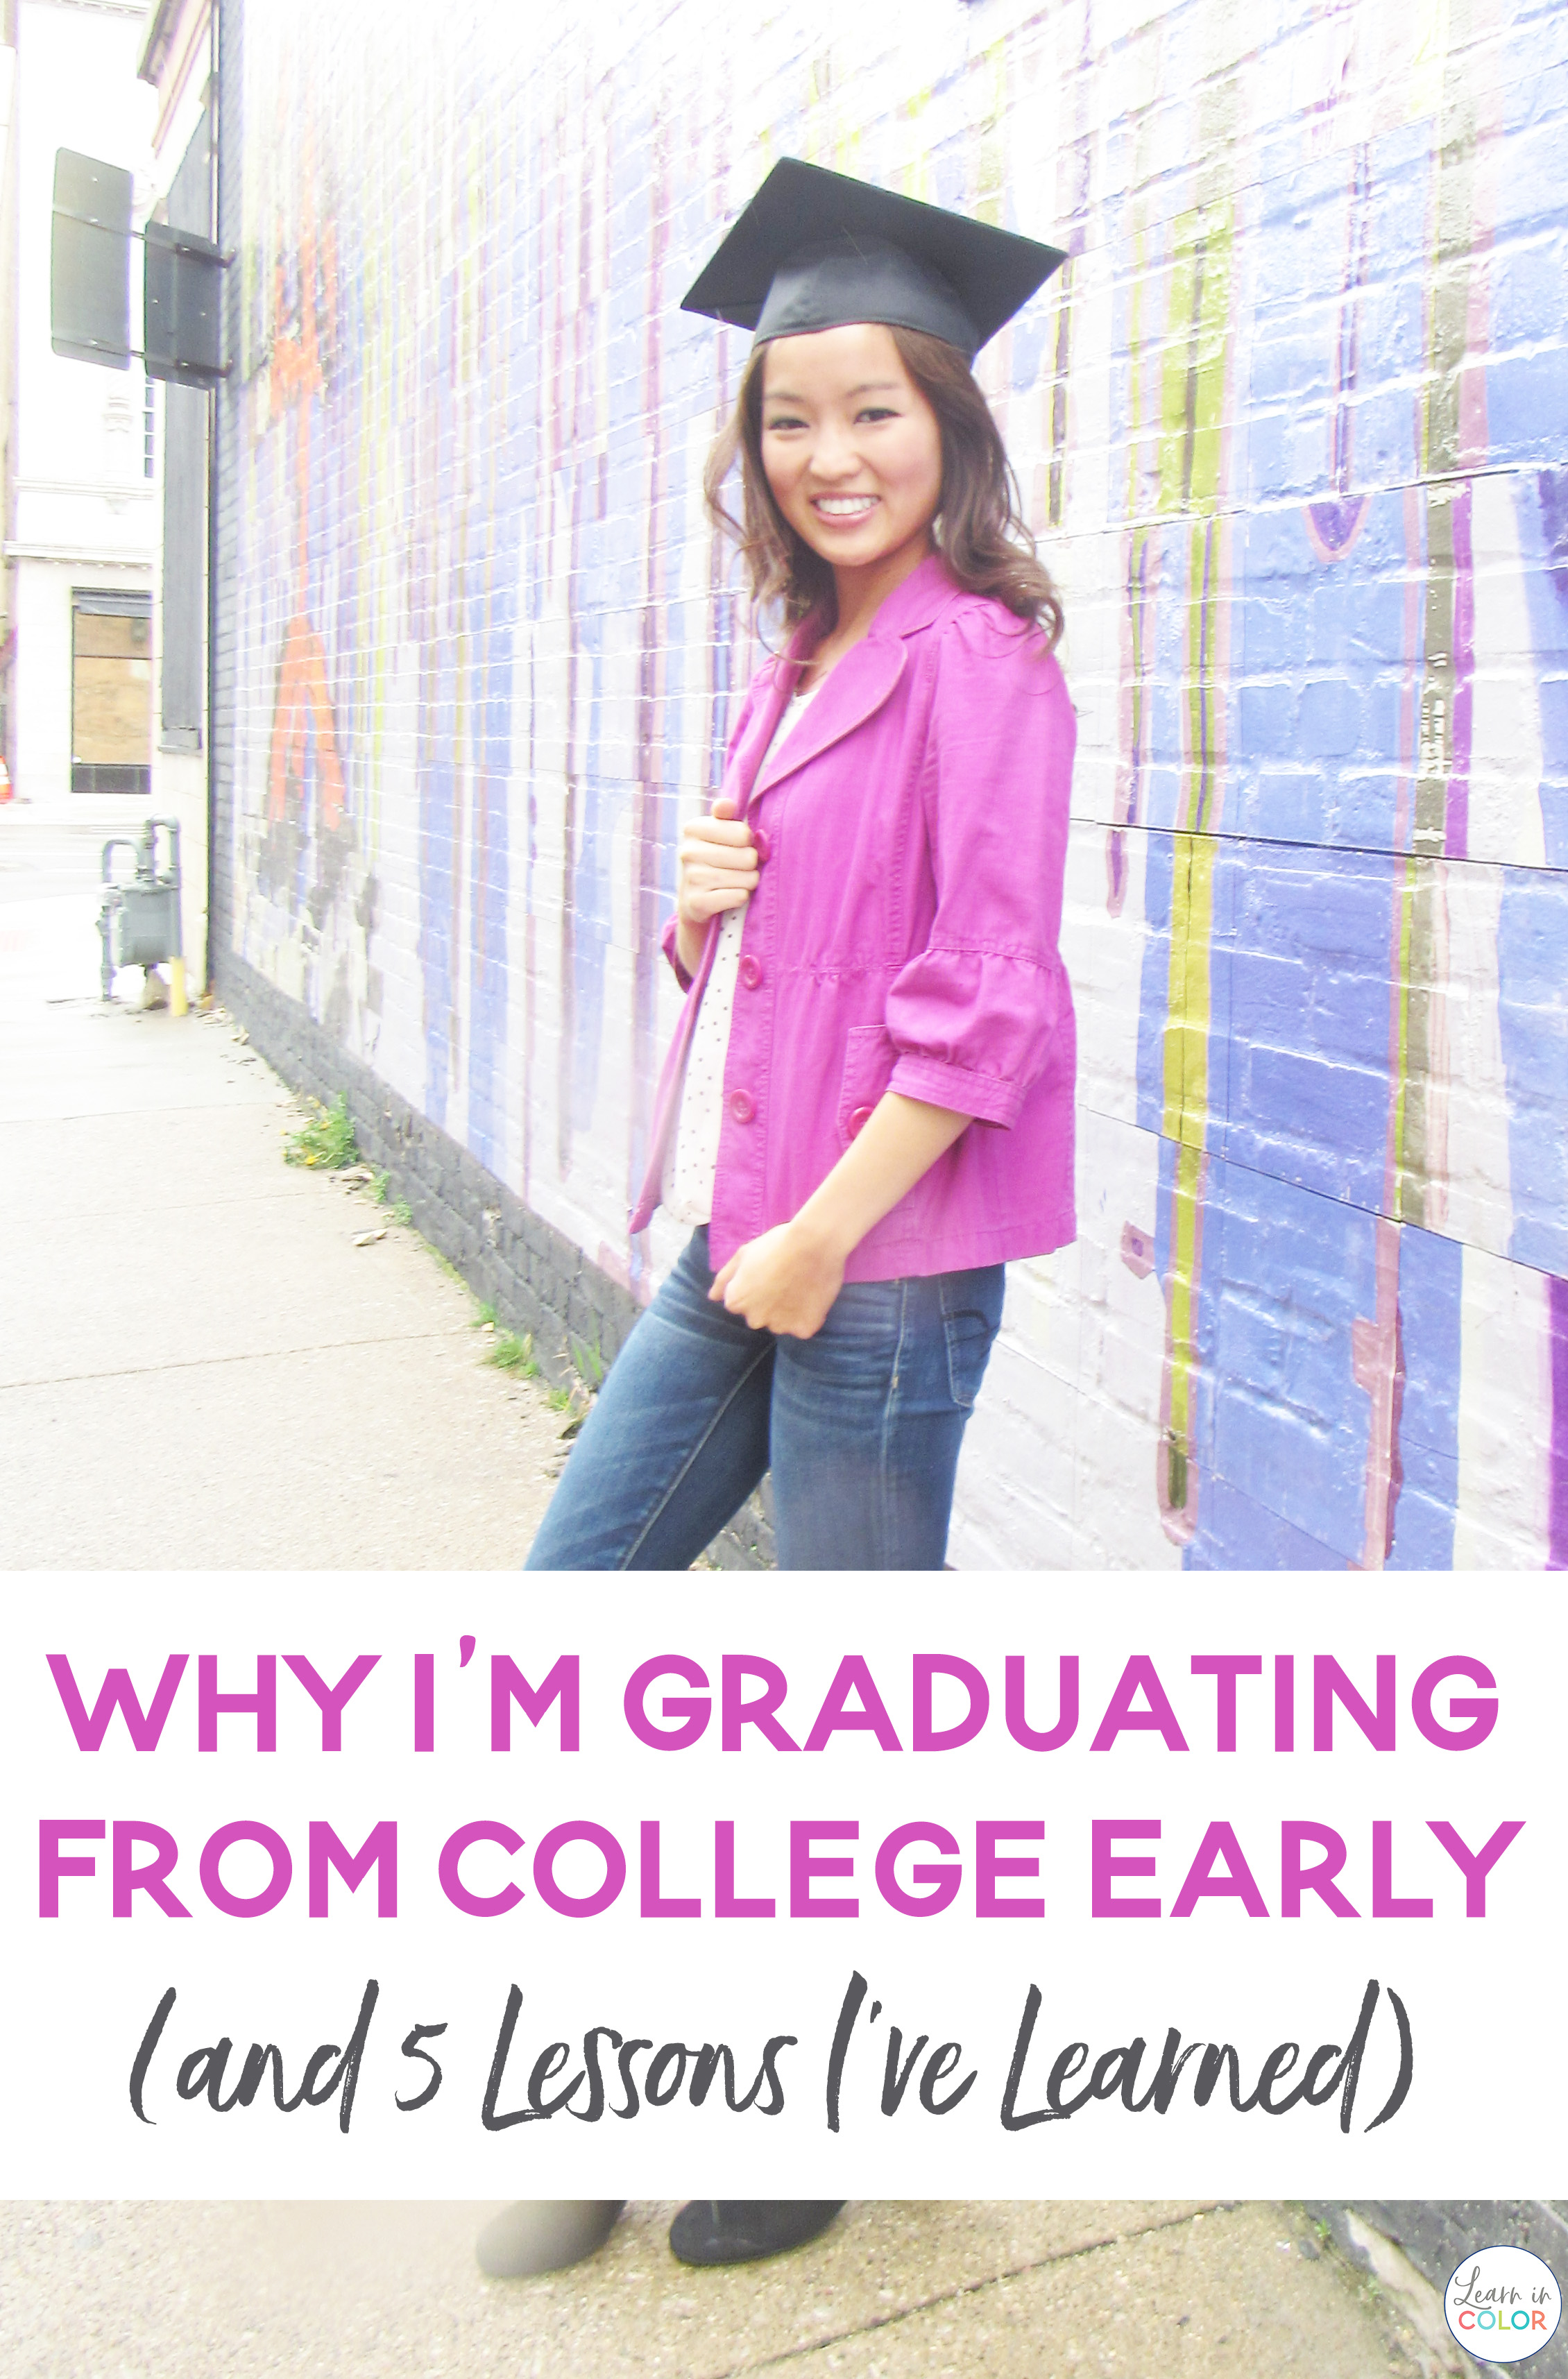 Graduating from college early comes with many stigmas - some positive, some negative. Here's 3 reasons why I chose to graduate early and 5 lessons I've learned along the way.